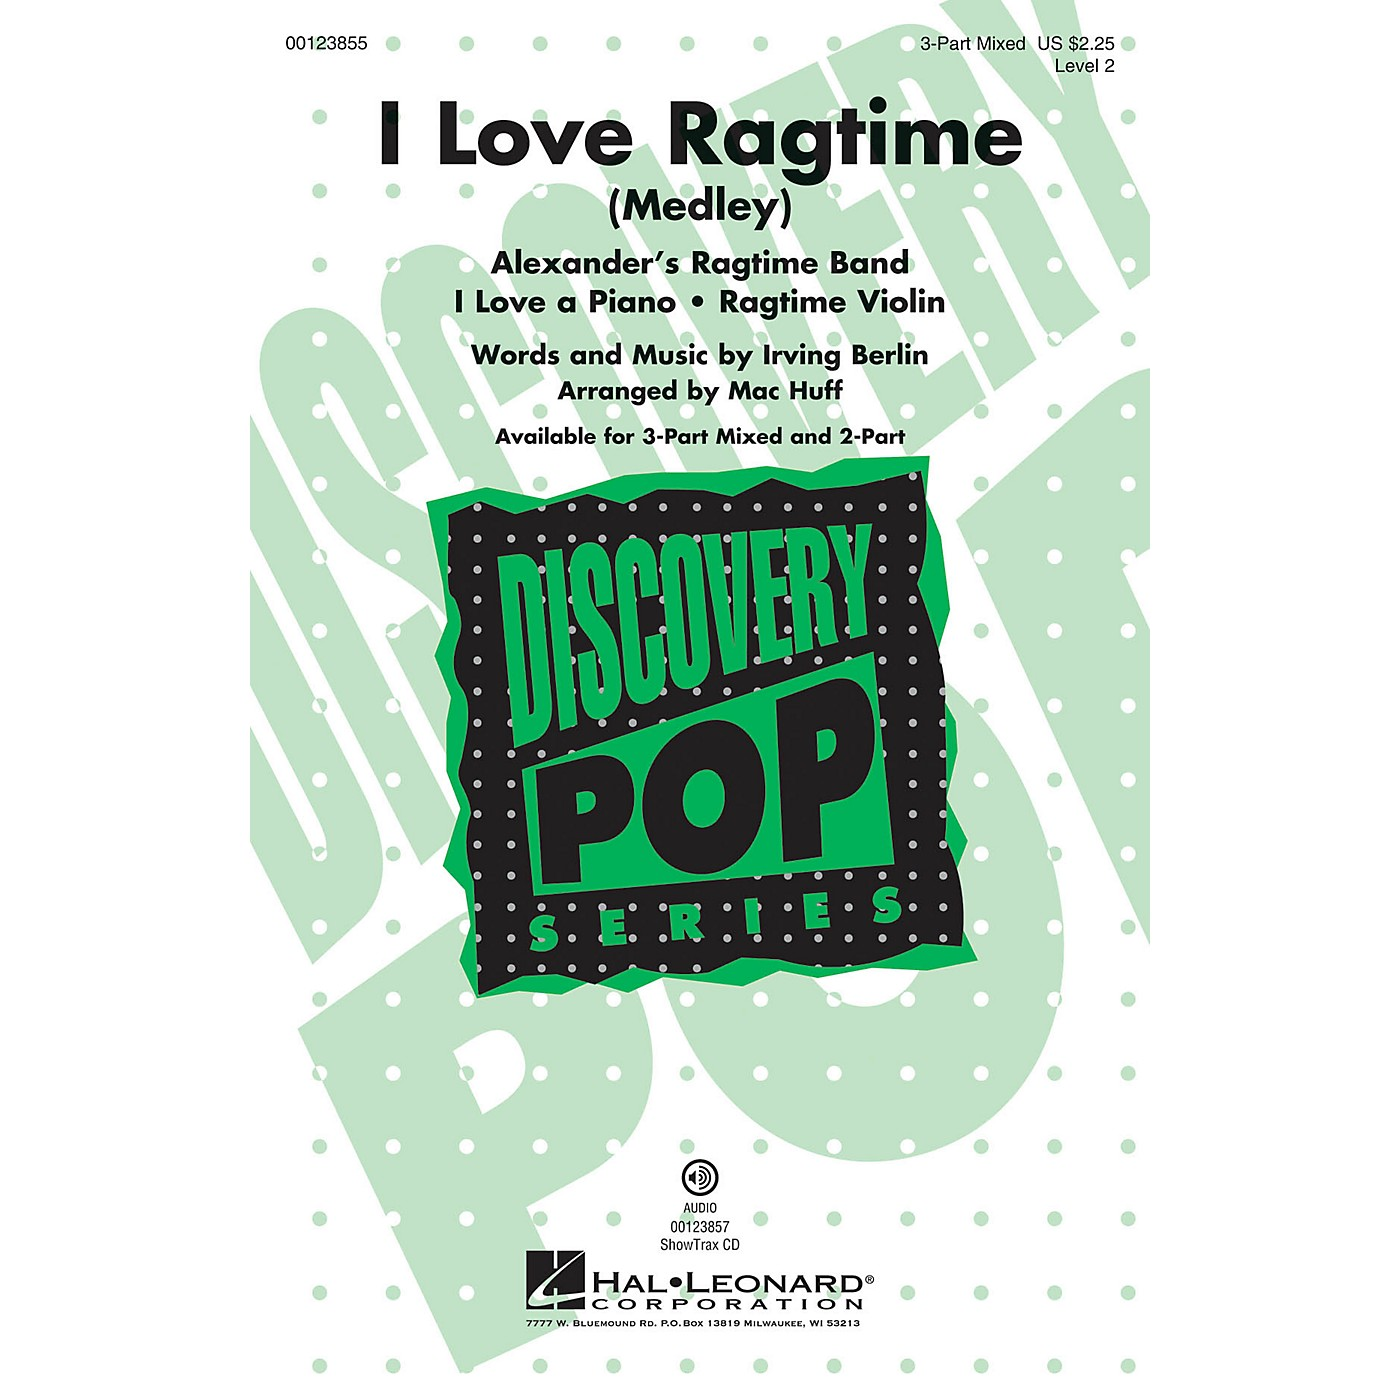 Hal Leonard I Love Ragtime (Medley Discovery Level 2) 3-Part Mixed arranged by Mac Huff thumbnail